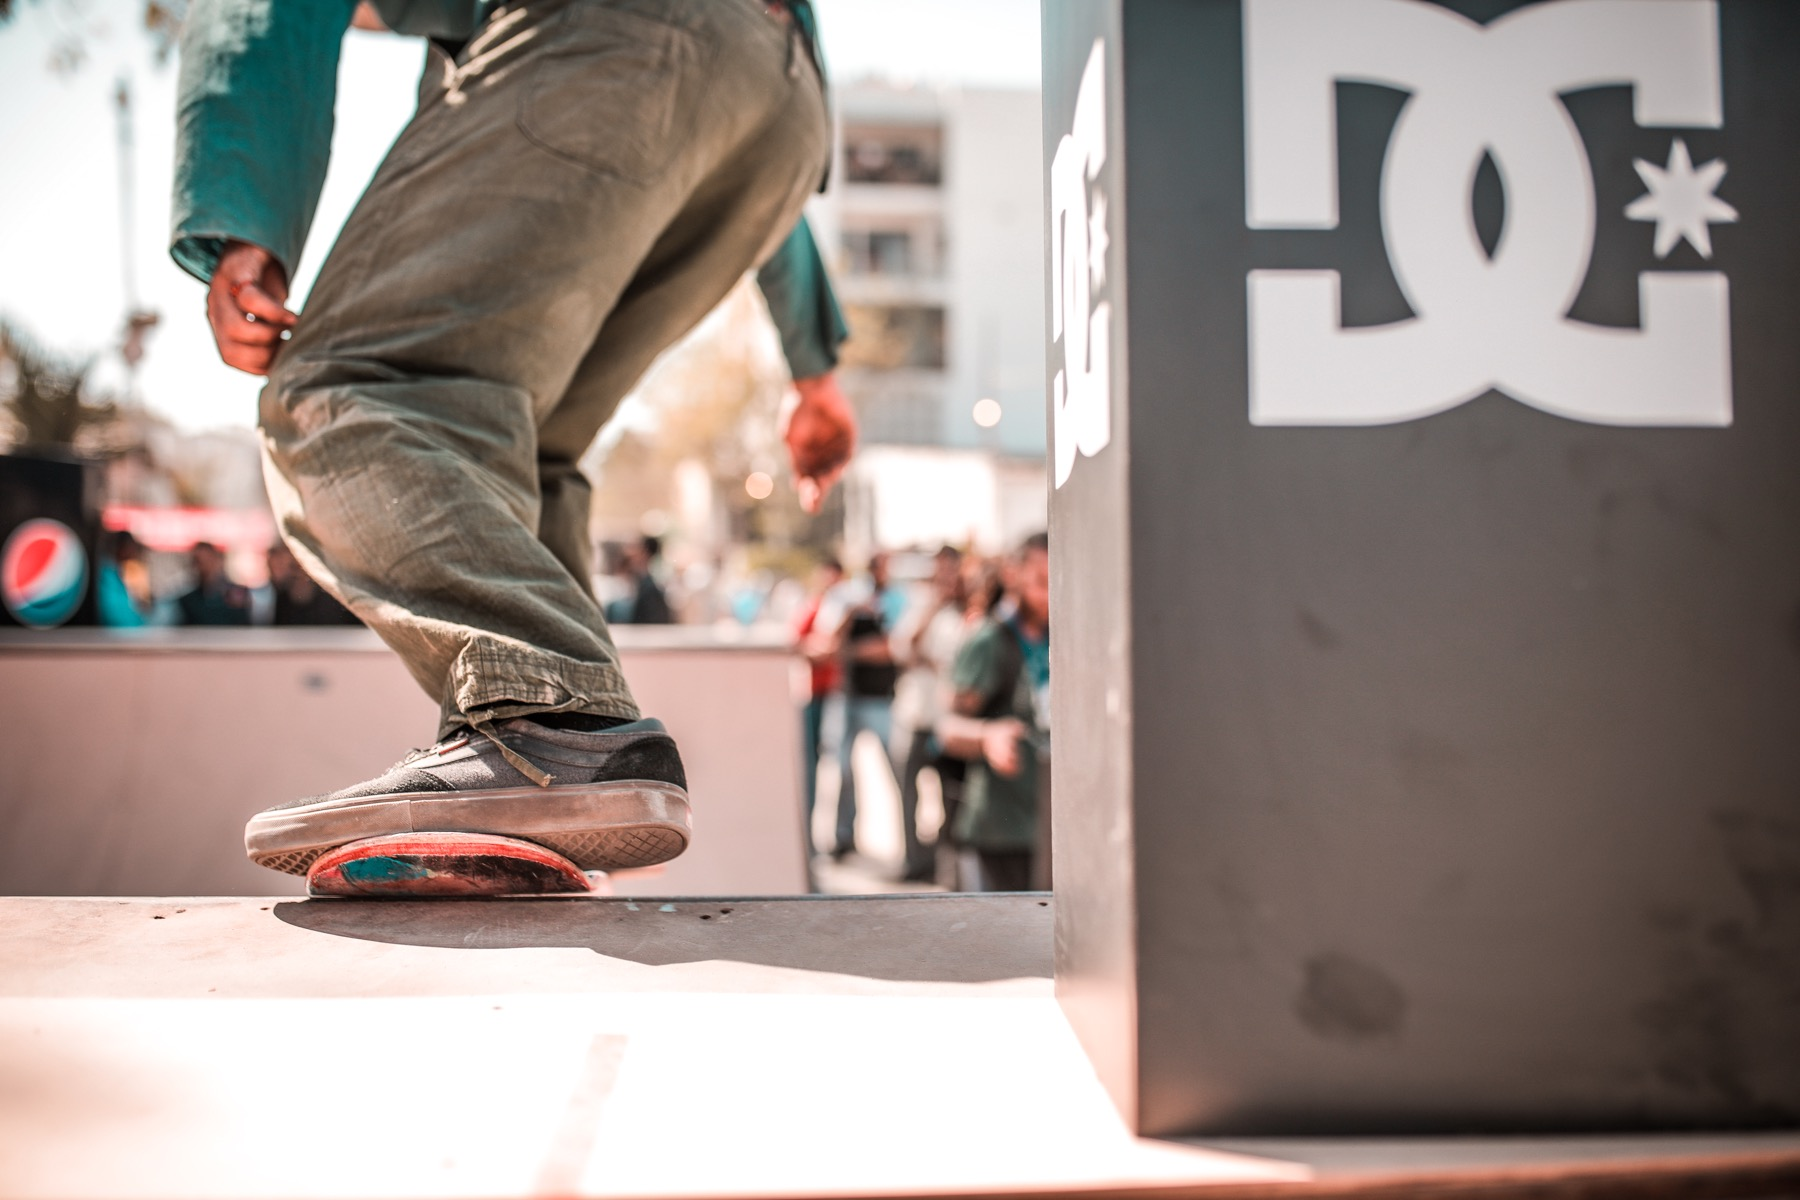 Homegrown India presents HGStreet in Mumbai on March 18, 2018, a celebration of sneaker and street culture - DC Arena brings BMX crews and skaters976A5663.jpg